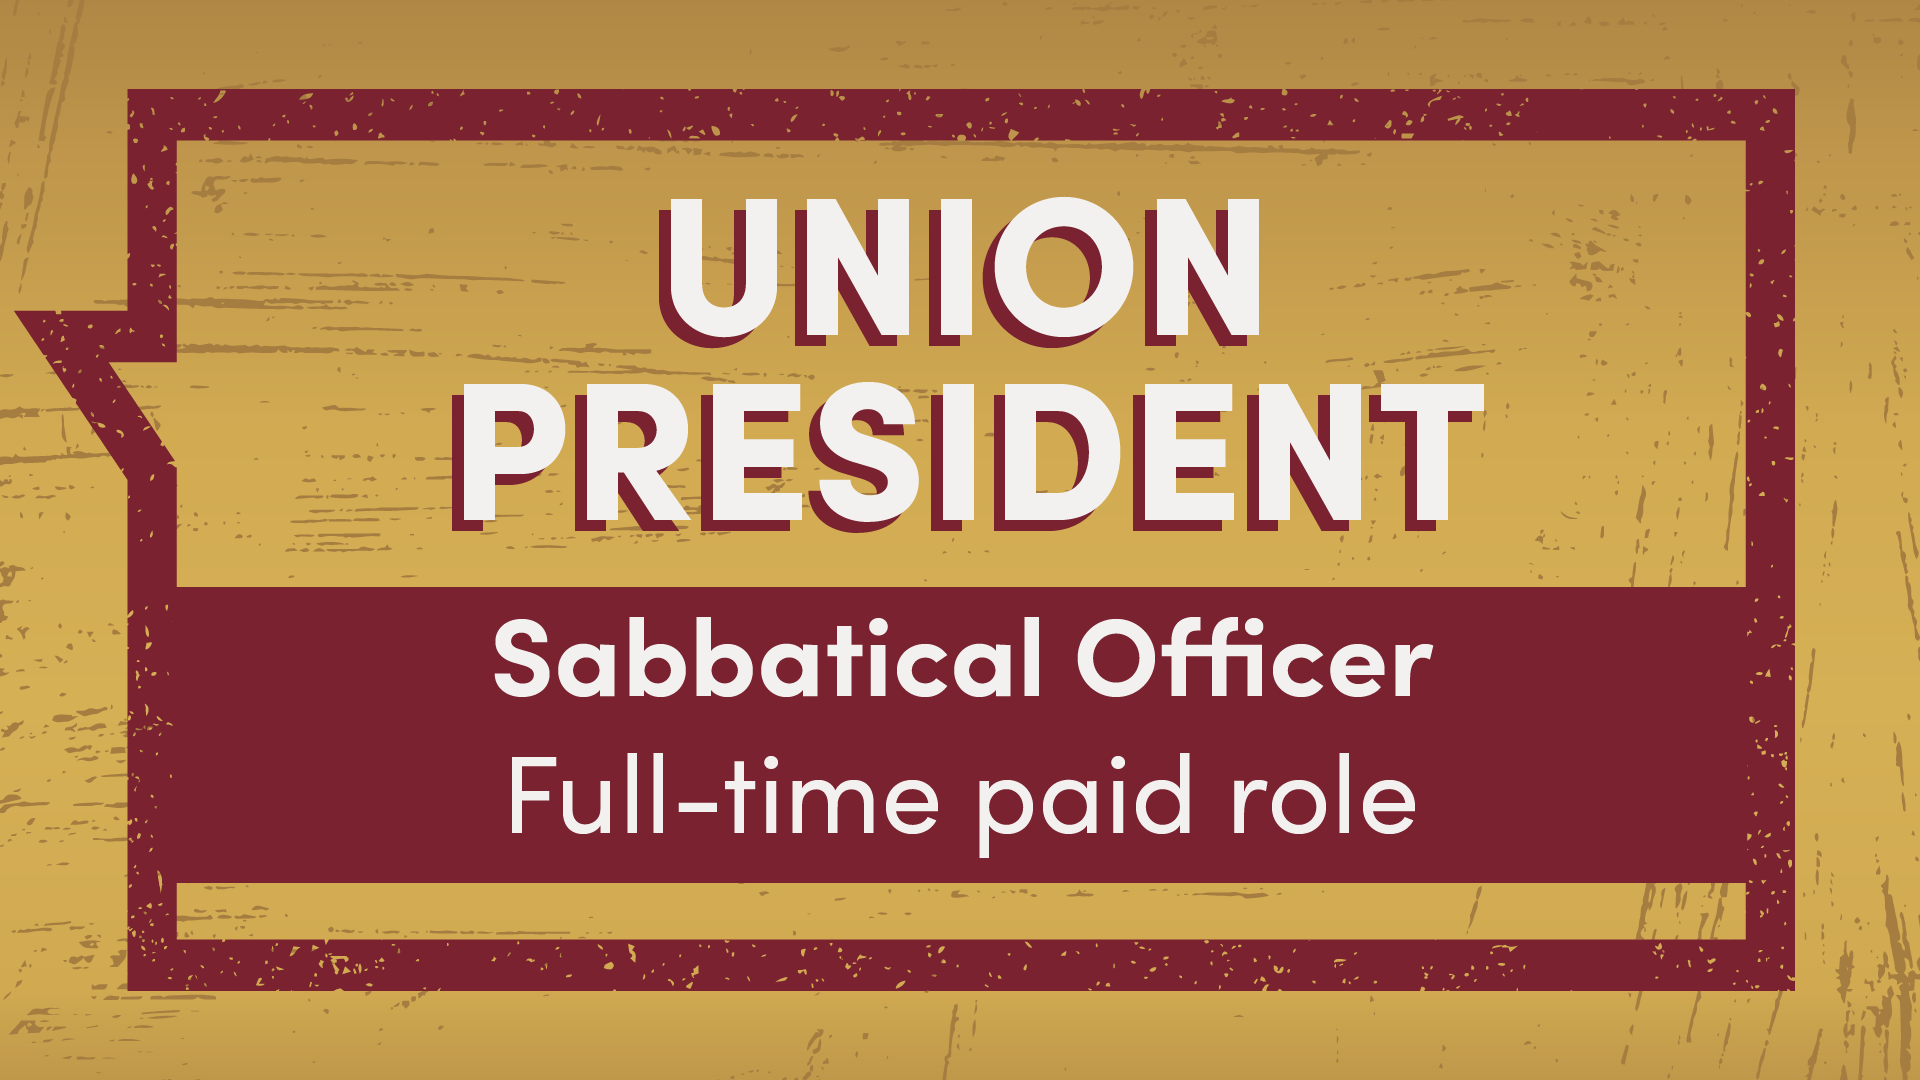 Union President Sabbatical Officer full-time paid role